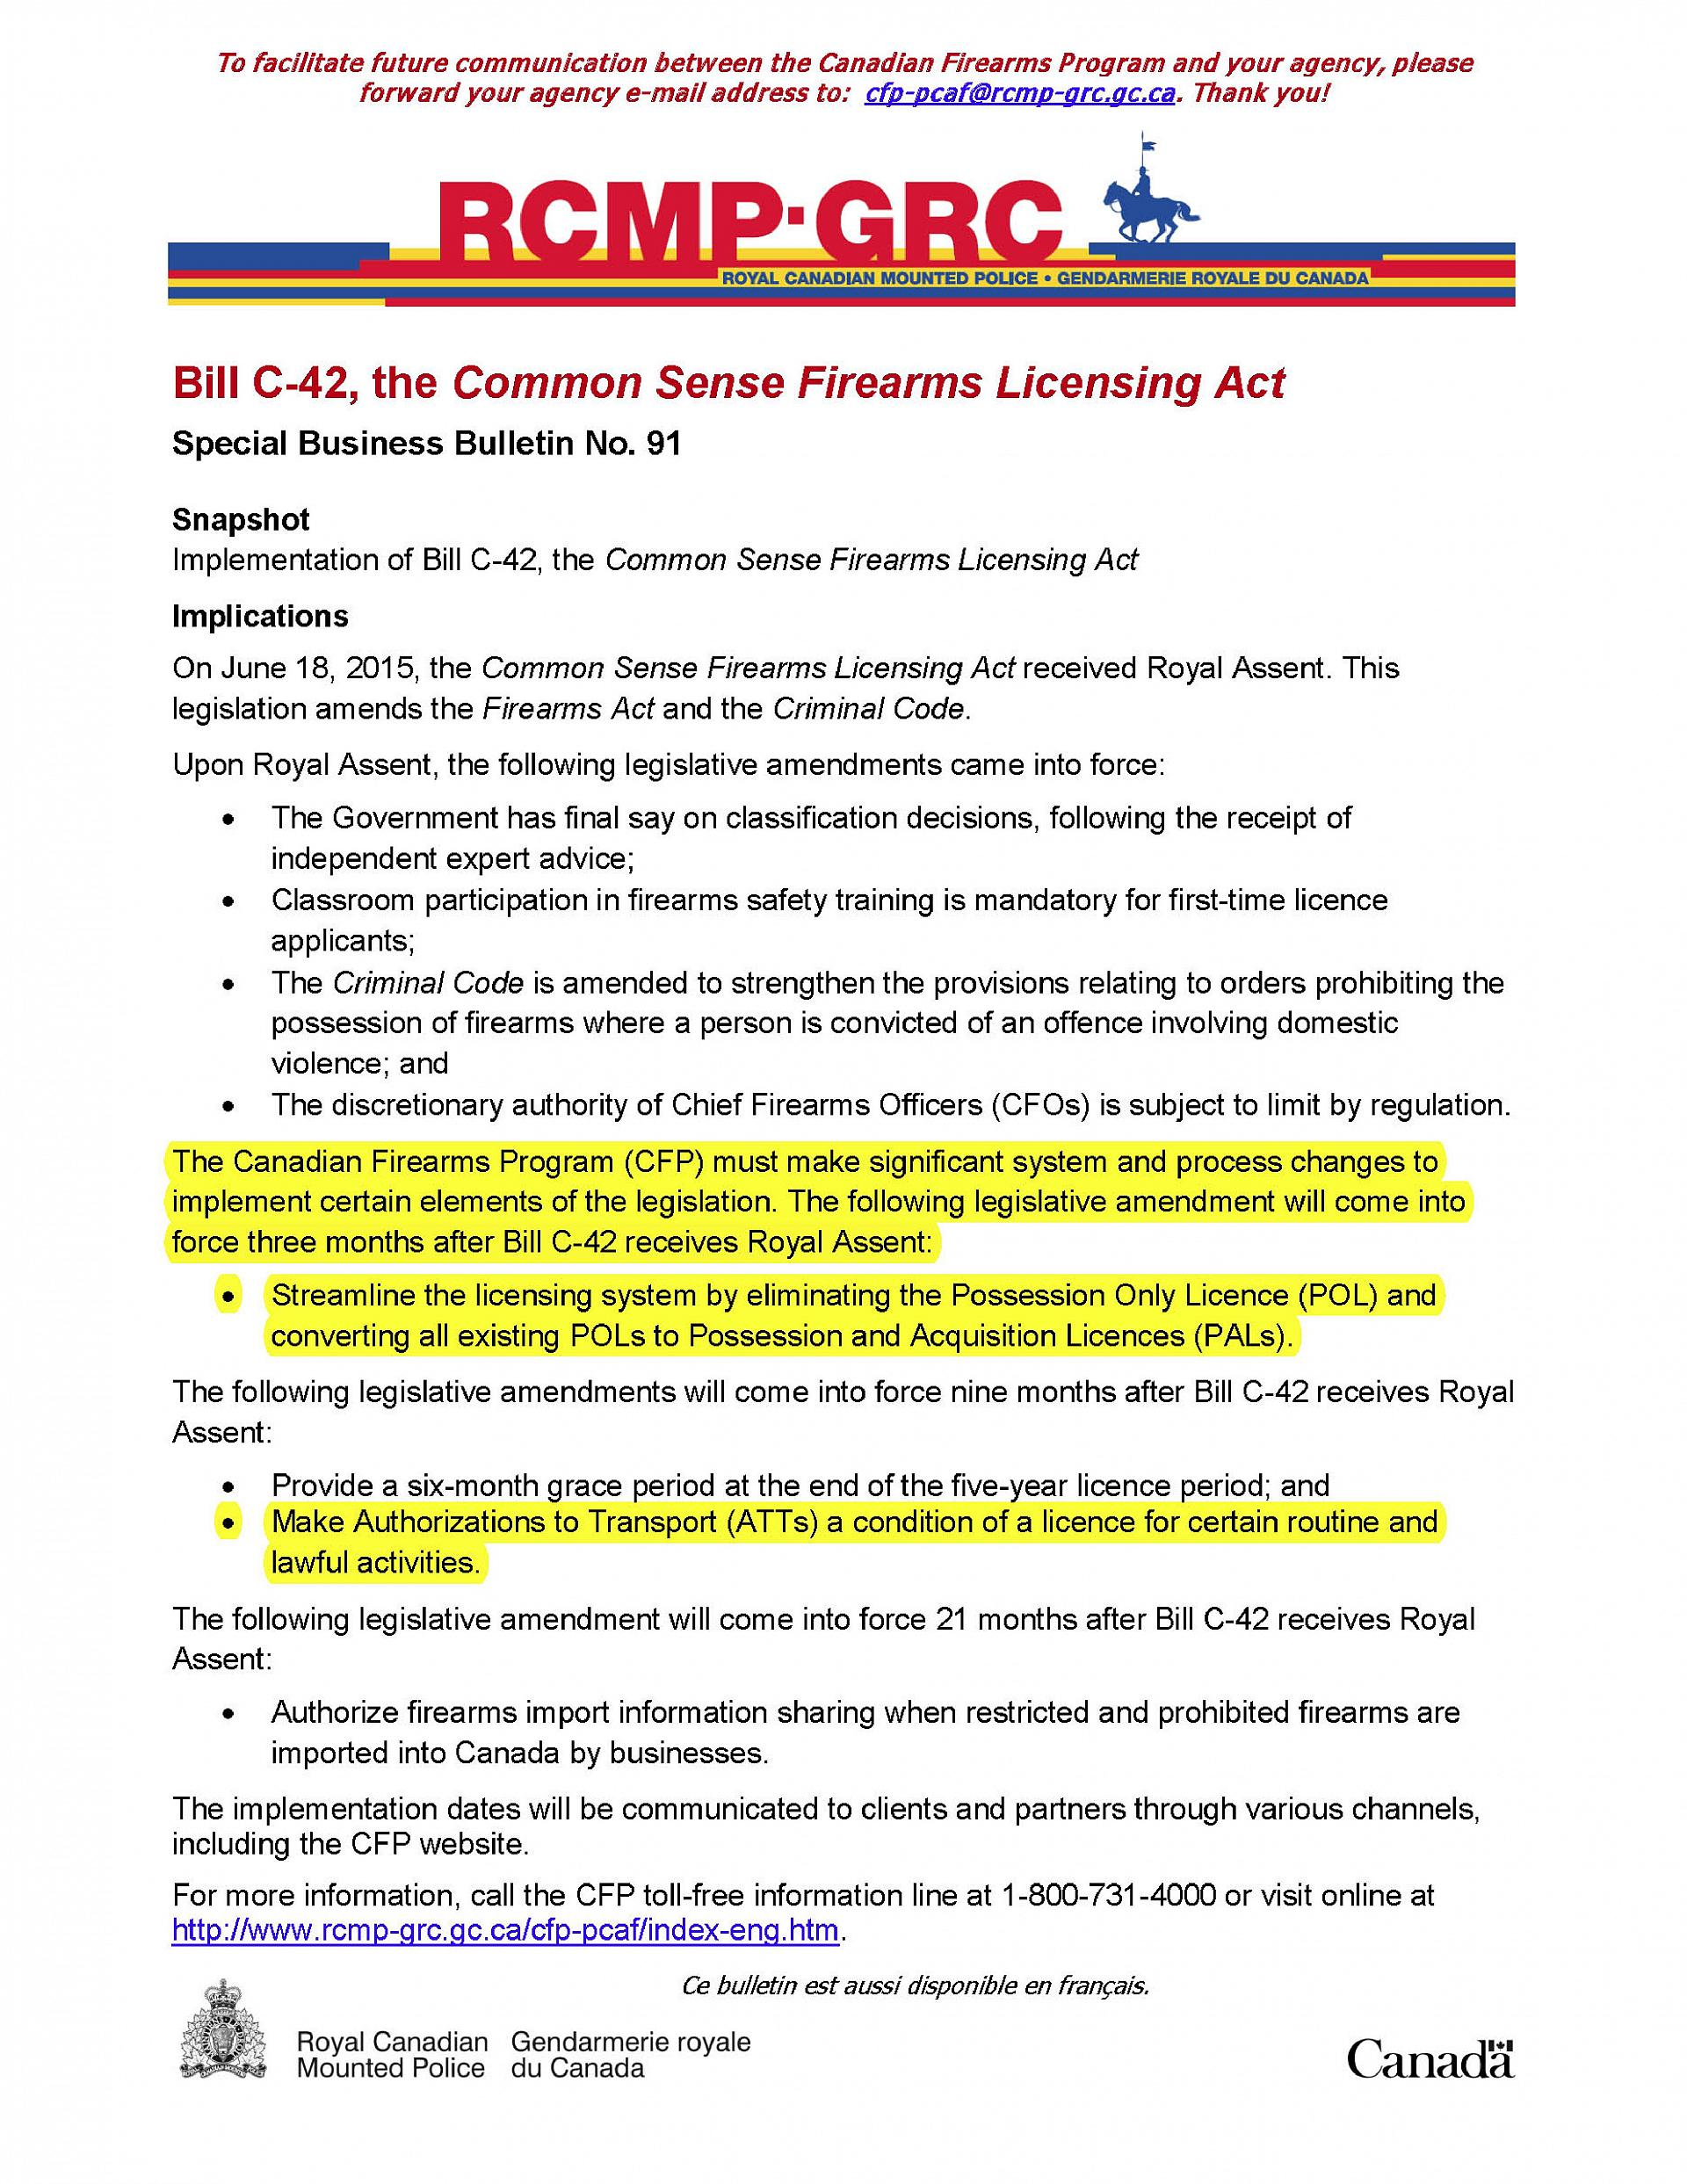 Bill C-42 as of June 2015